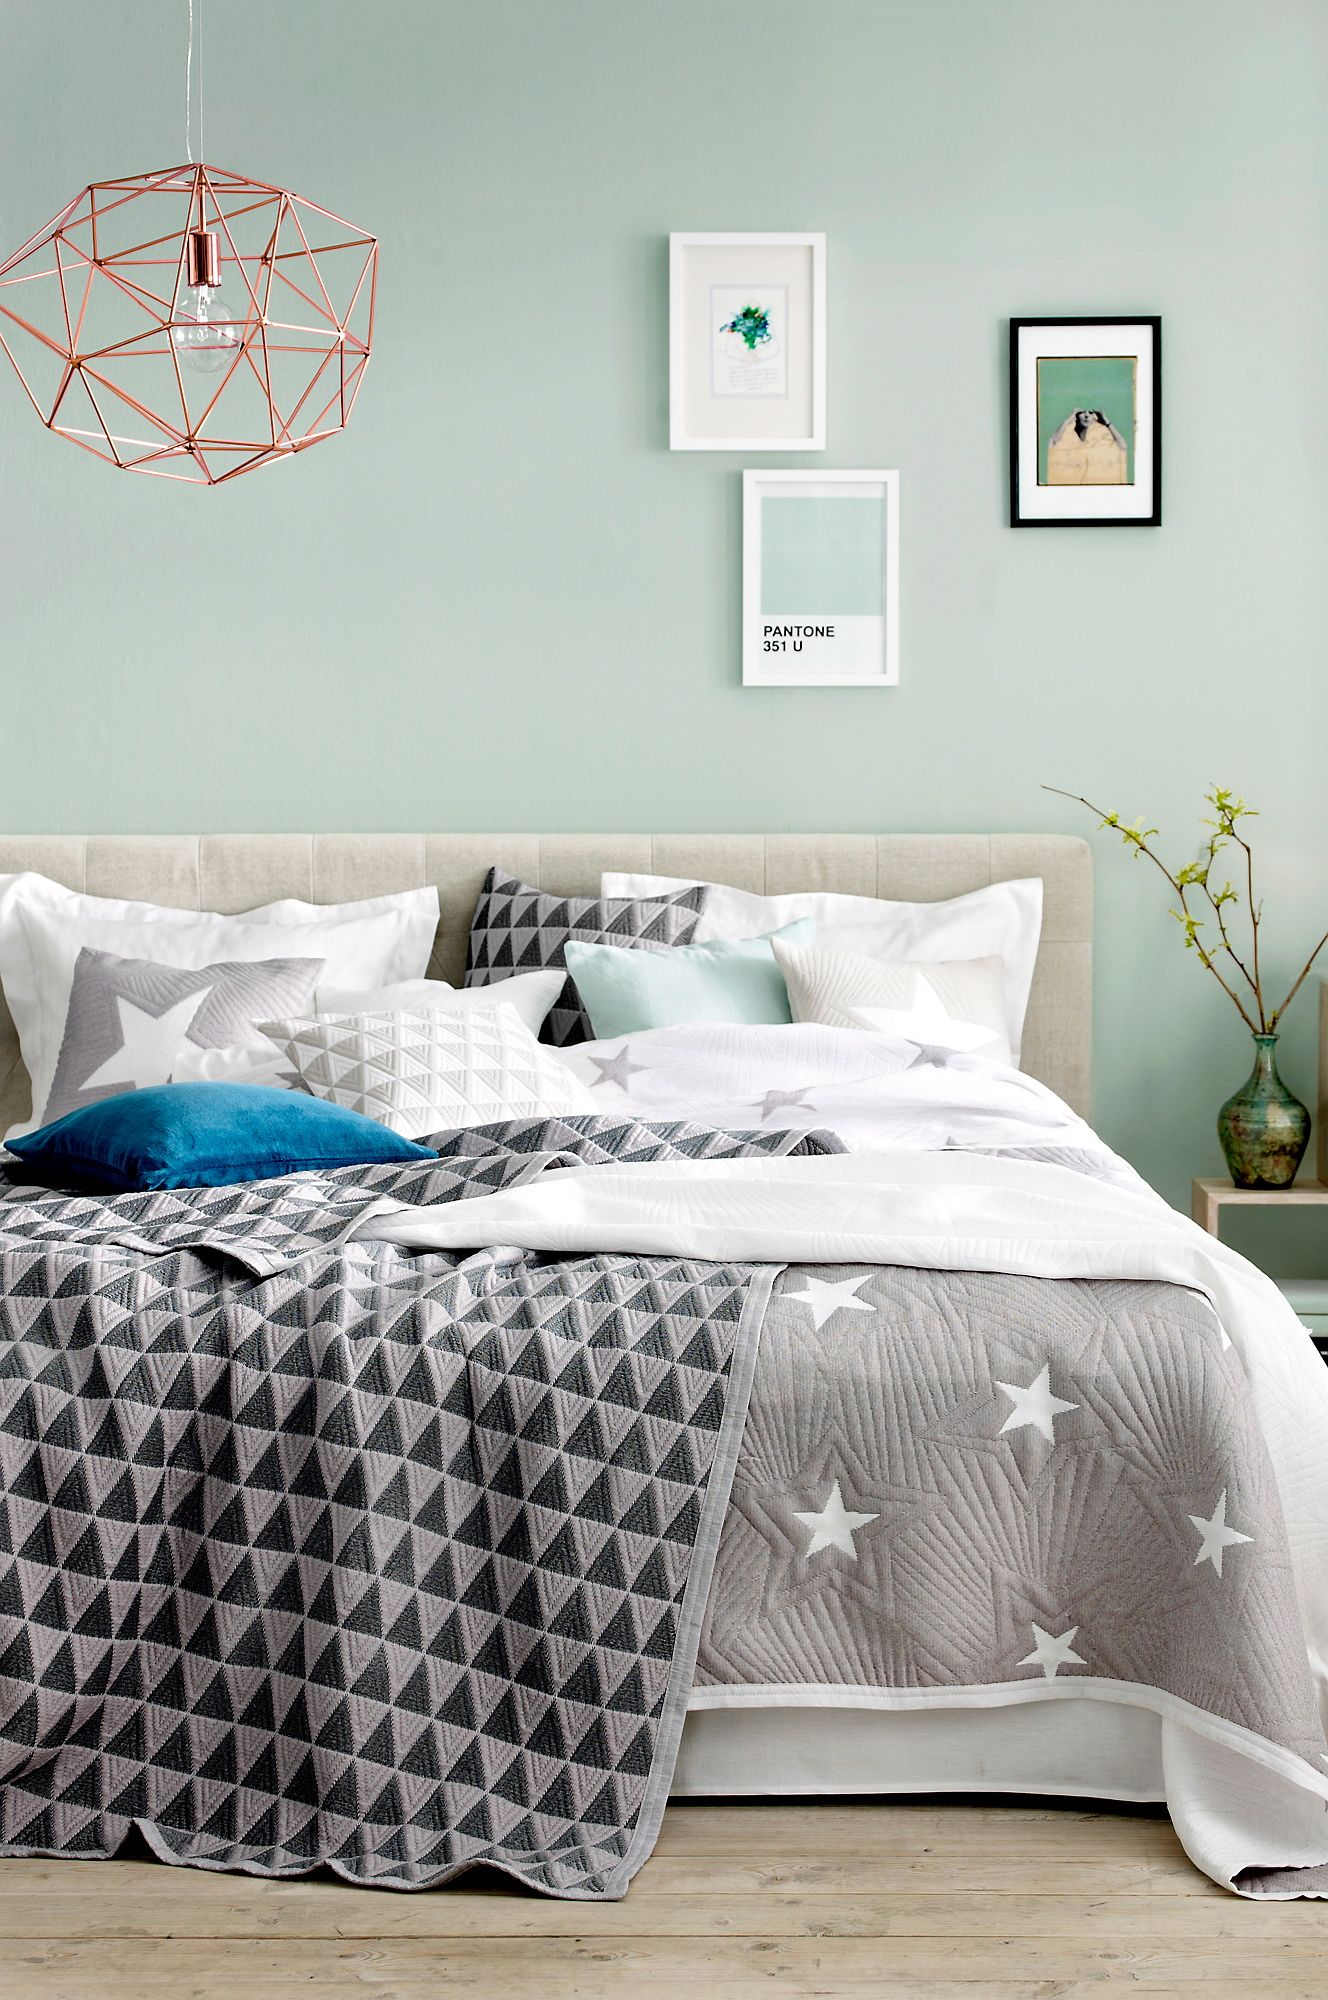 Mint Watery Blue Green Walls Grey Accents Comfy Bed I Like The Star Quilt